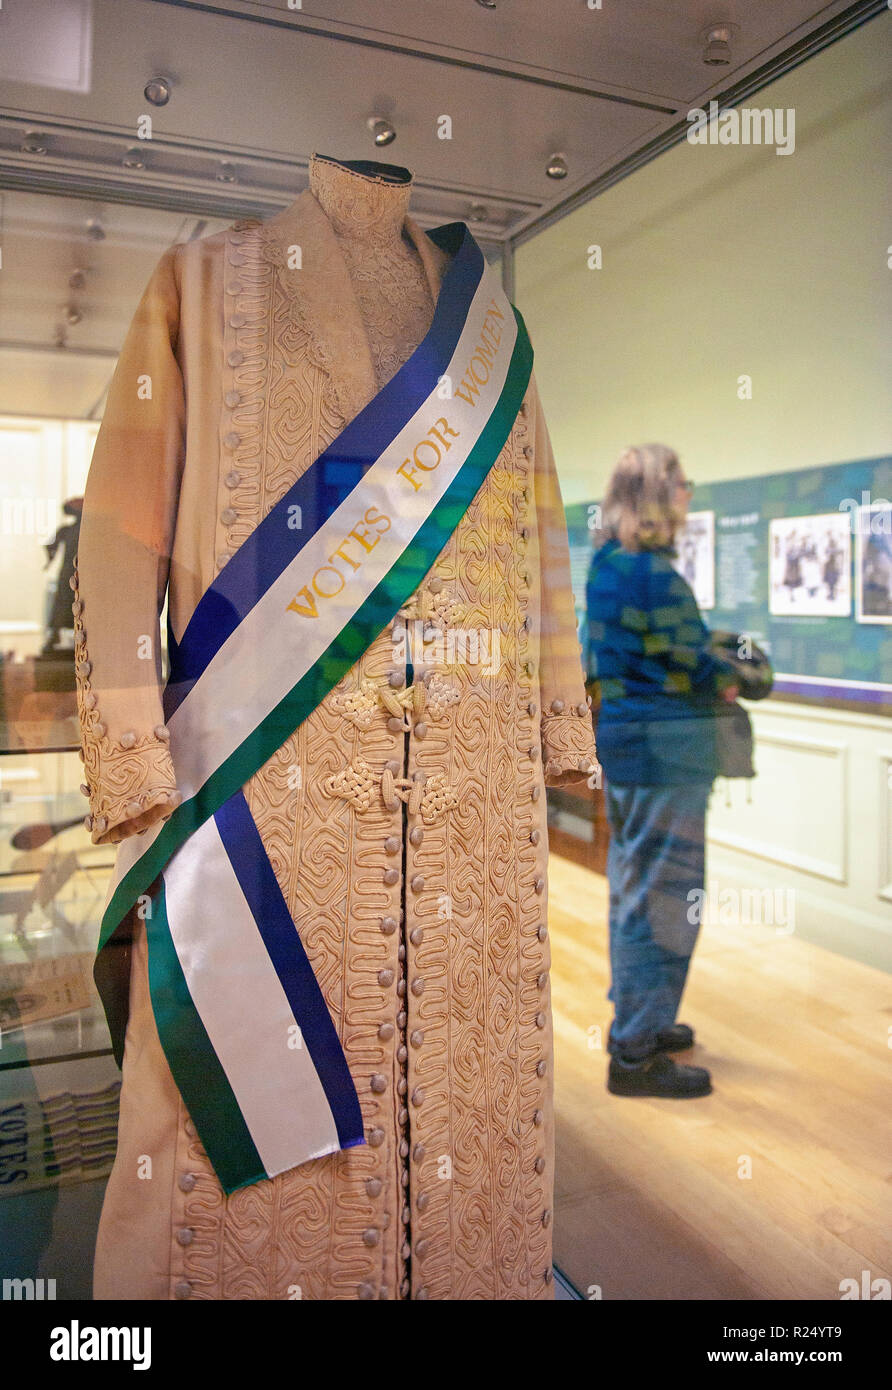 Leicester, UK. 16 November 2018. Alice Hawkins and Votes For Women exhibition at New Walk Museum & Art Gallery, Leicerster, UK. - Stock Image